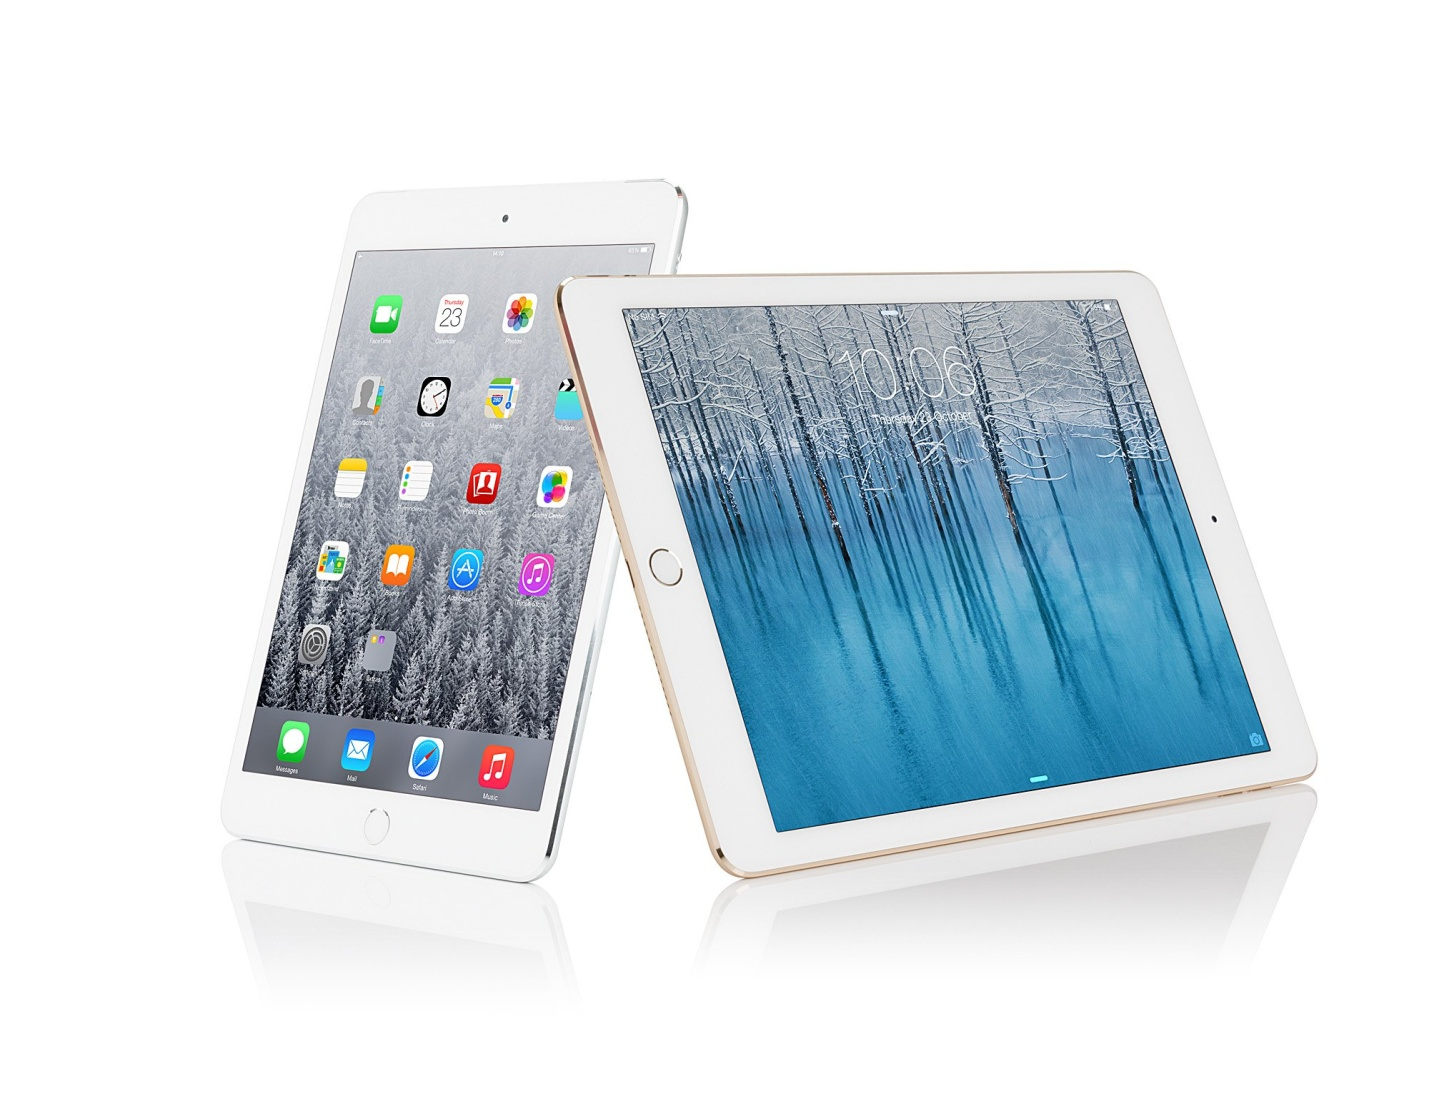 Nen-mua-iPad-Air-2-hay-iPad-mini-3